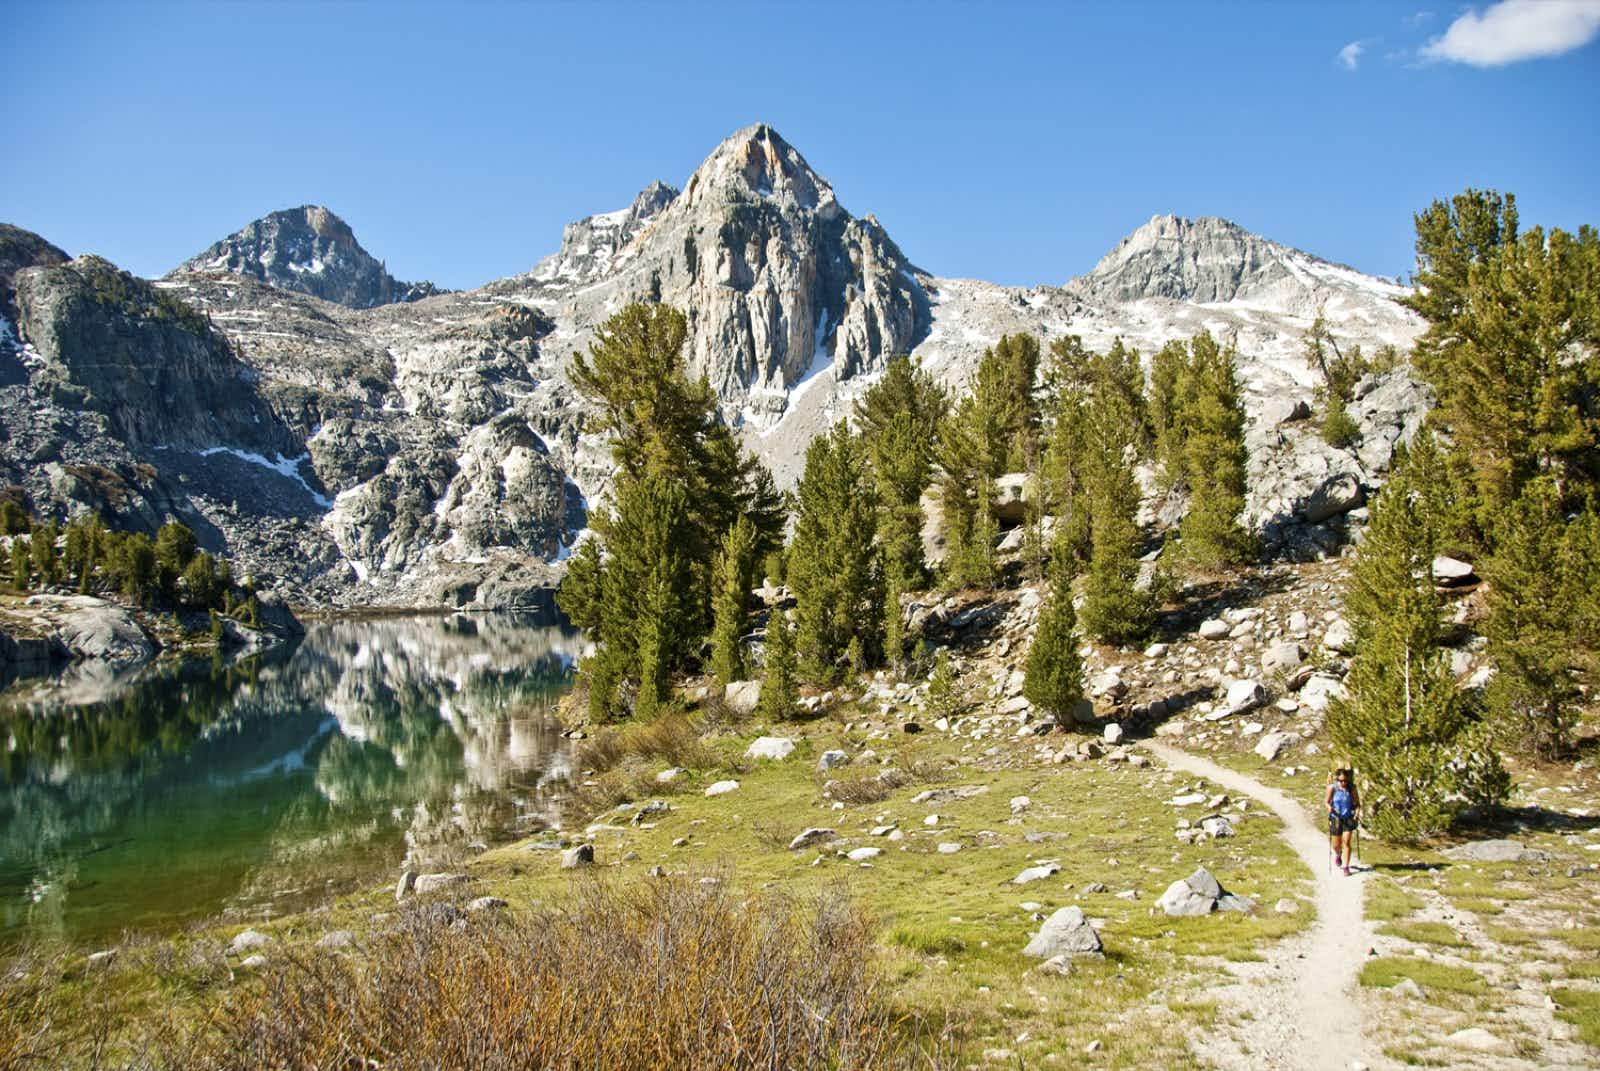 Mountains, lakes, forests, they're all a part of the PCT